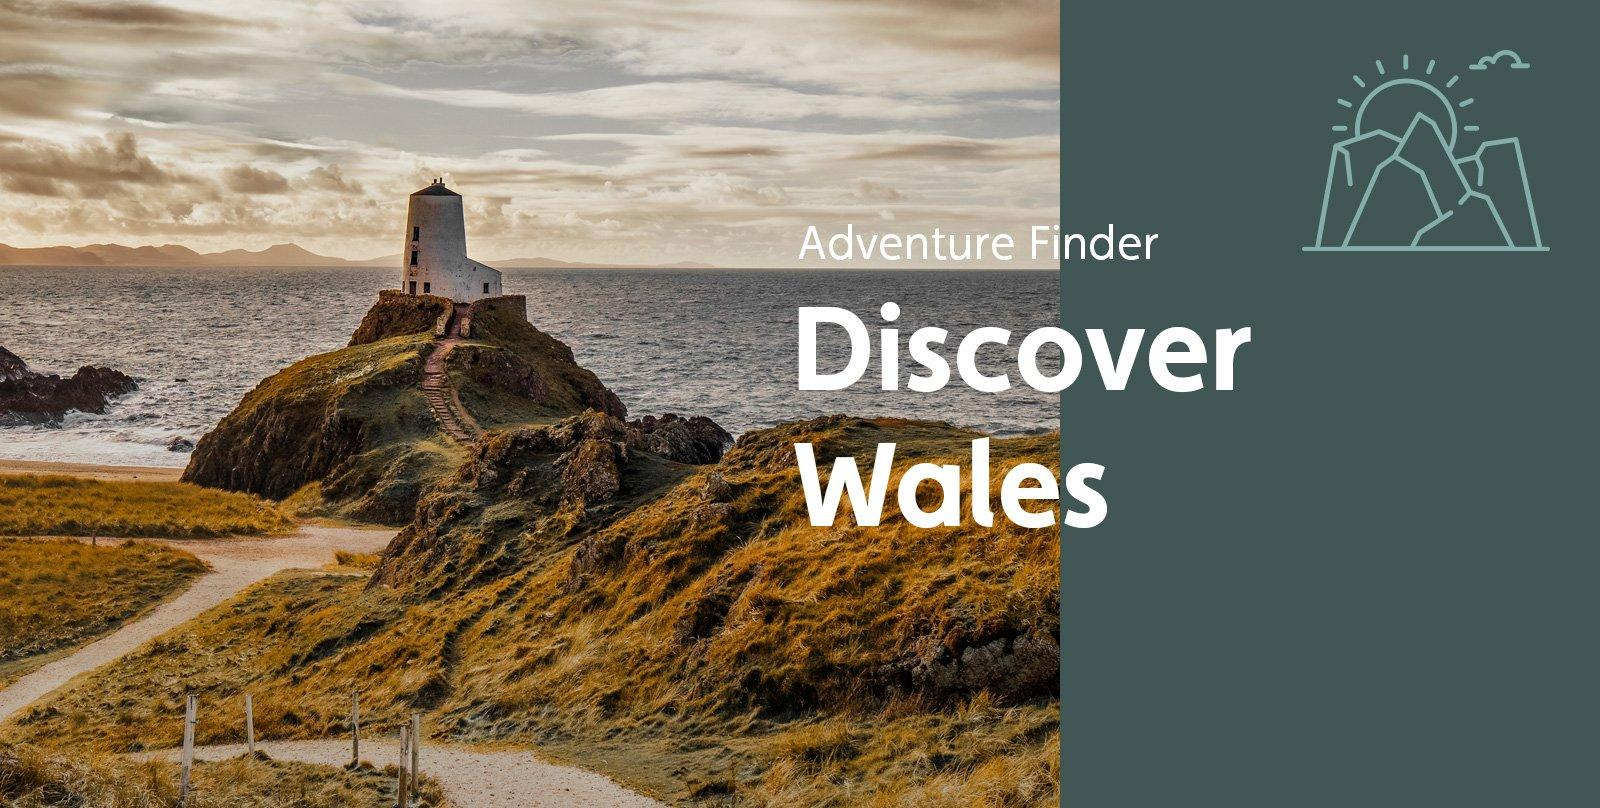 Adventure Finder – Discover Wales